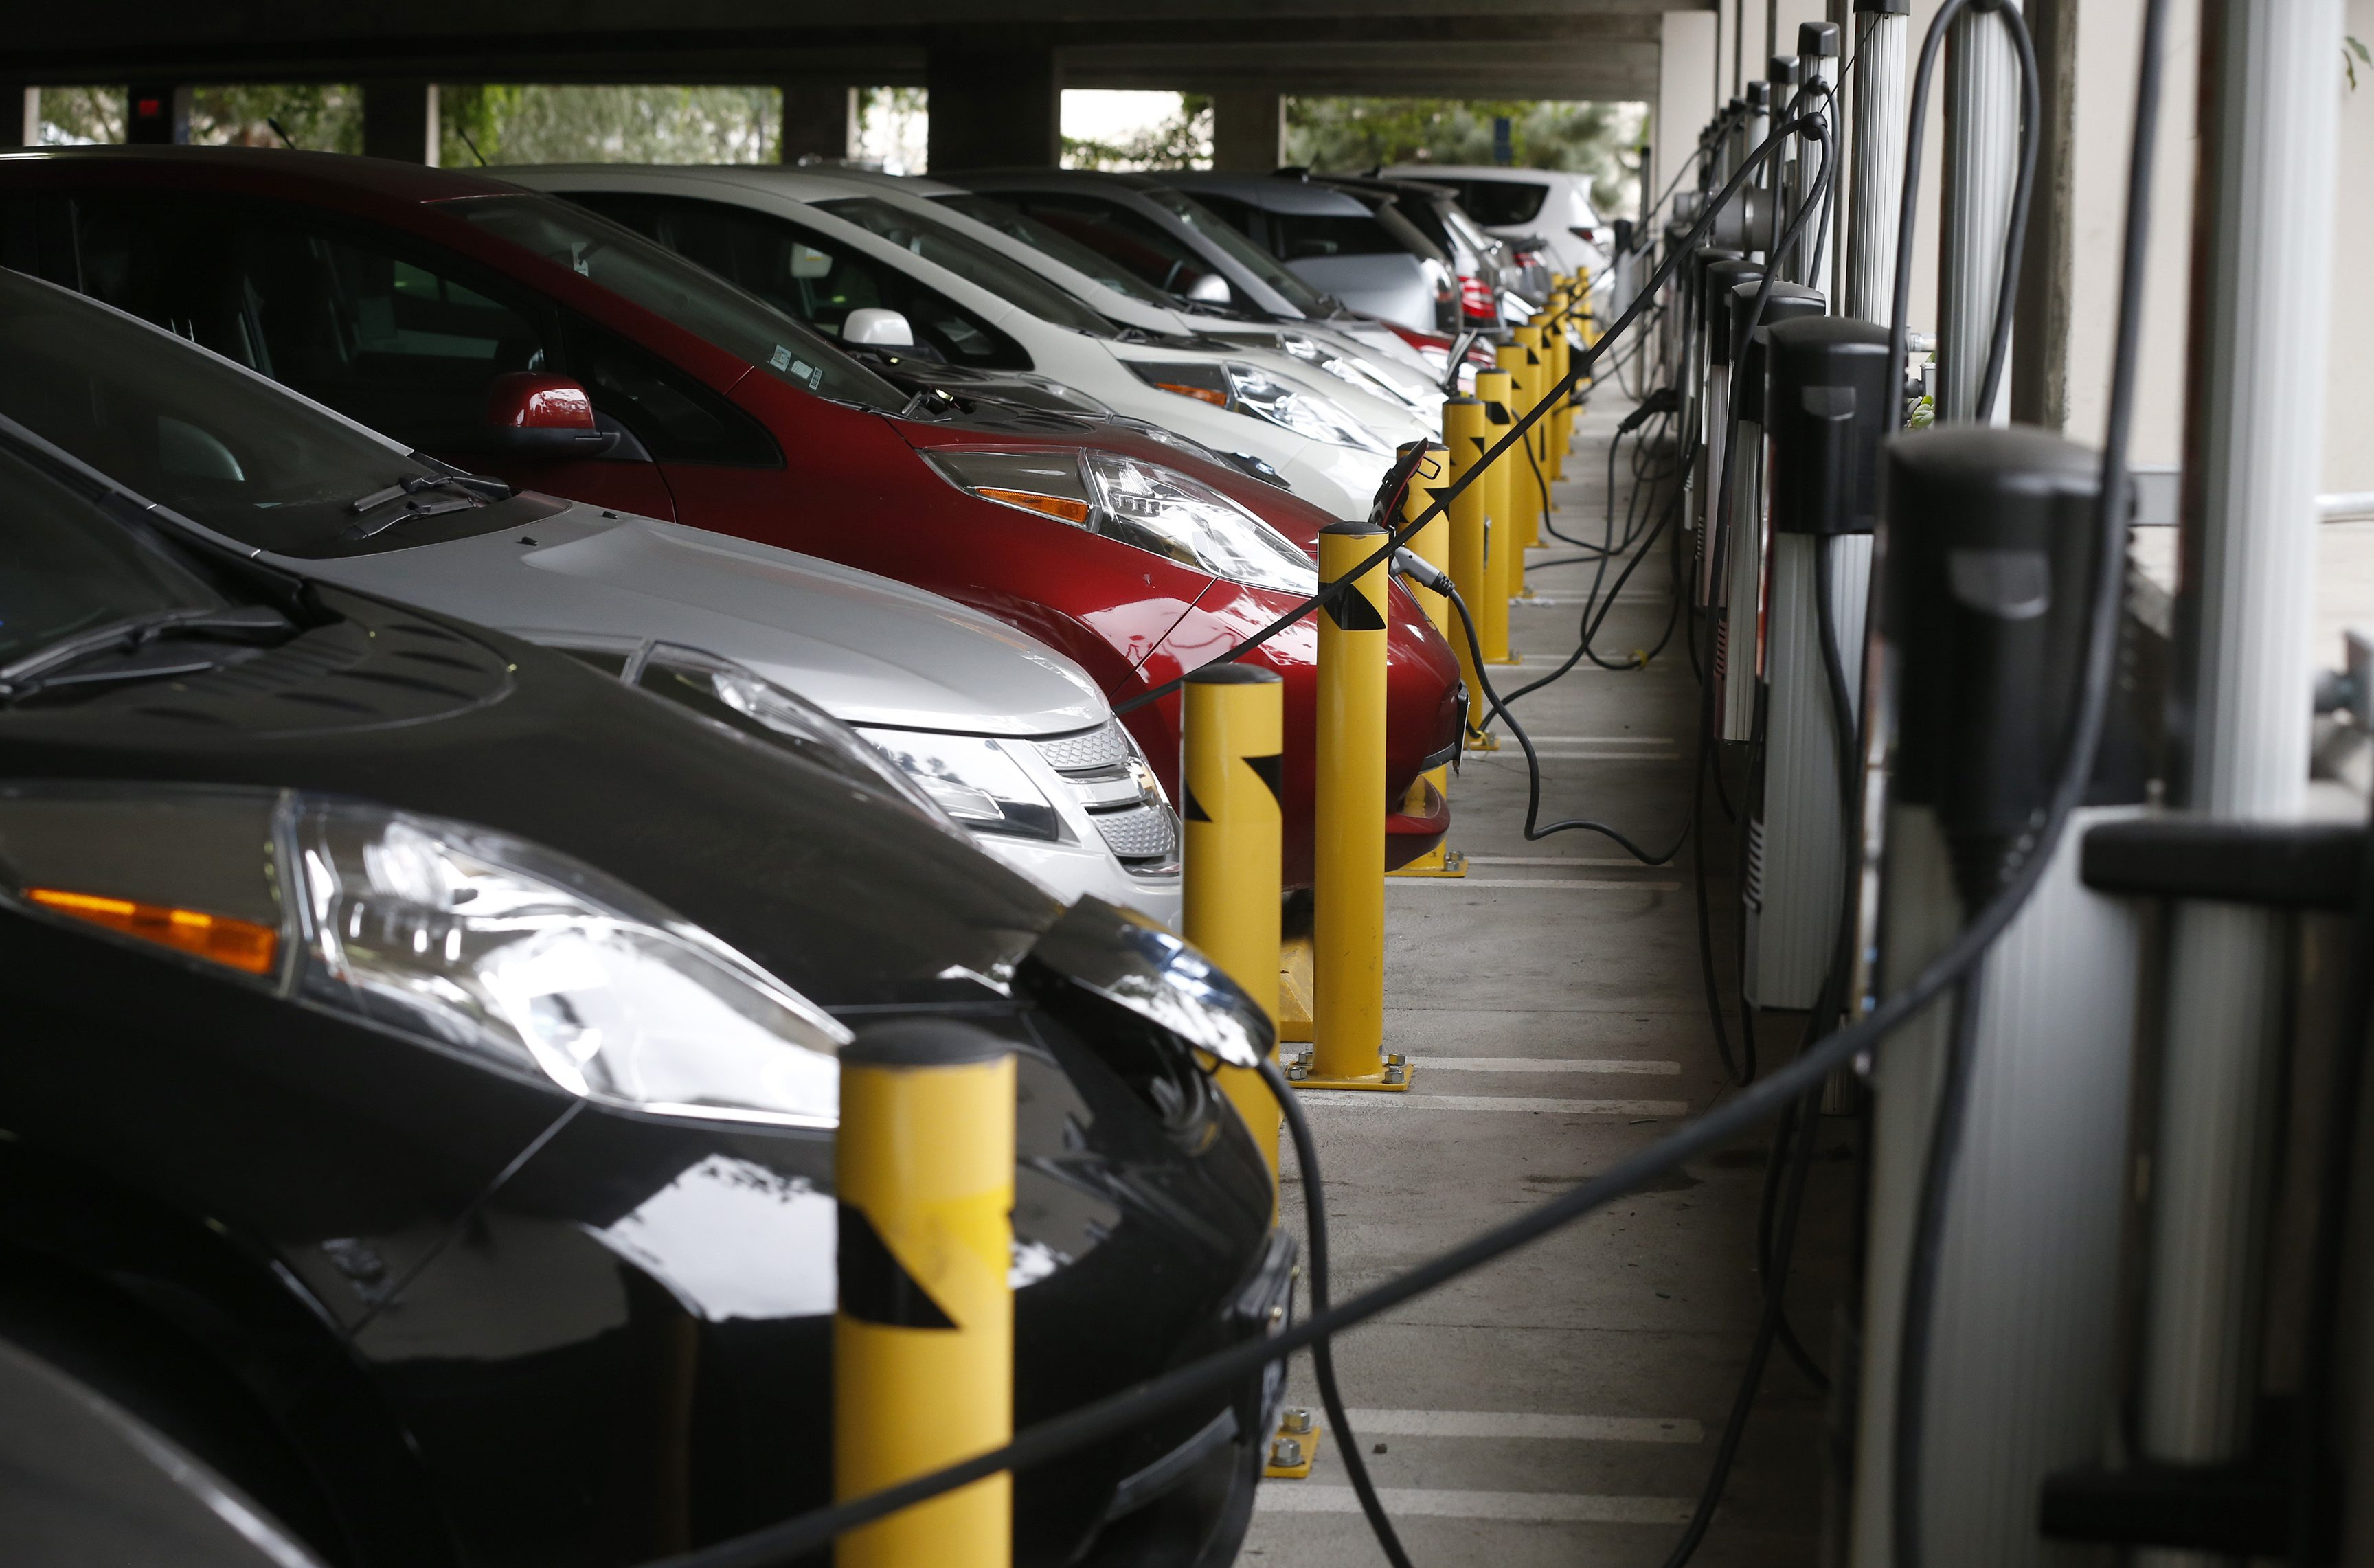 Electric cars sit charging in a parking garage at the University of California, Irvine January 26, 2015.